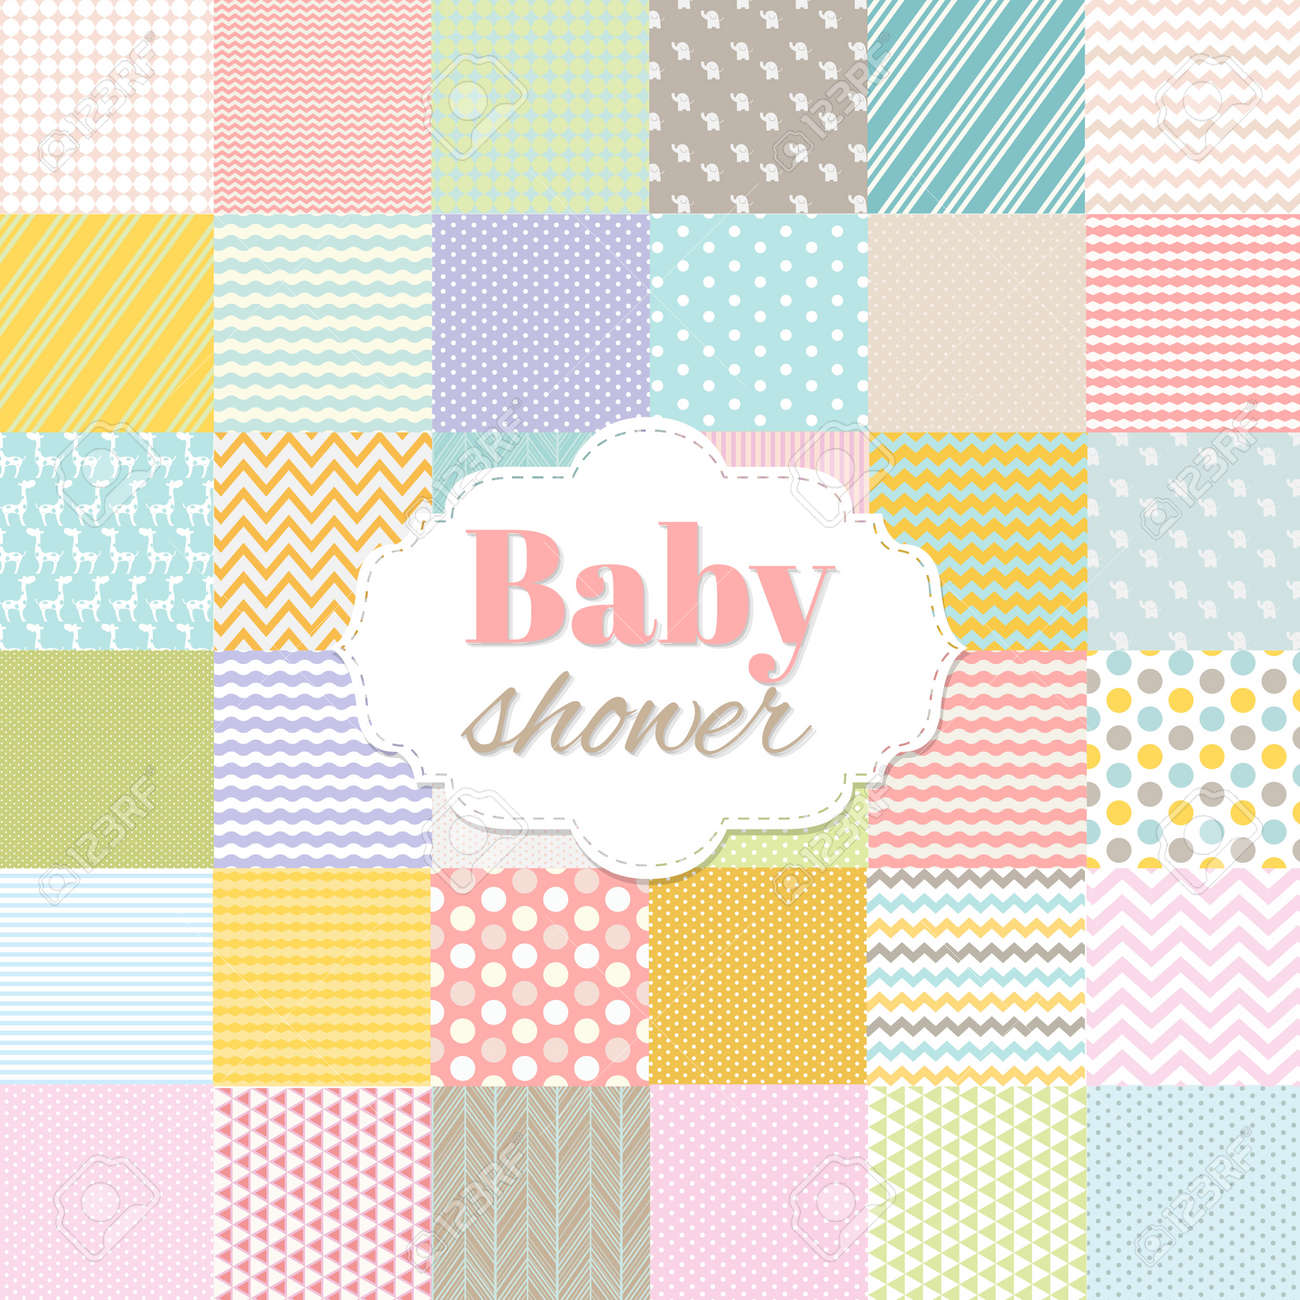 Baby Shower Poster With Gradient Mesh, Vector Illustration - 44688731